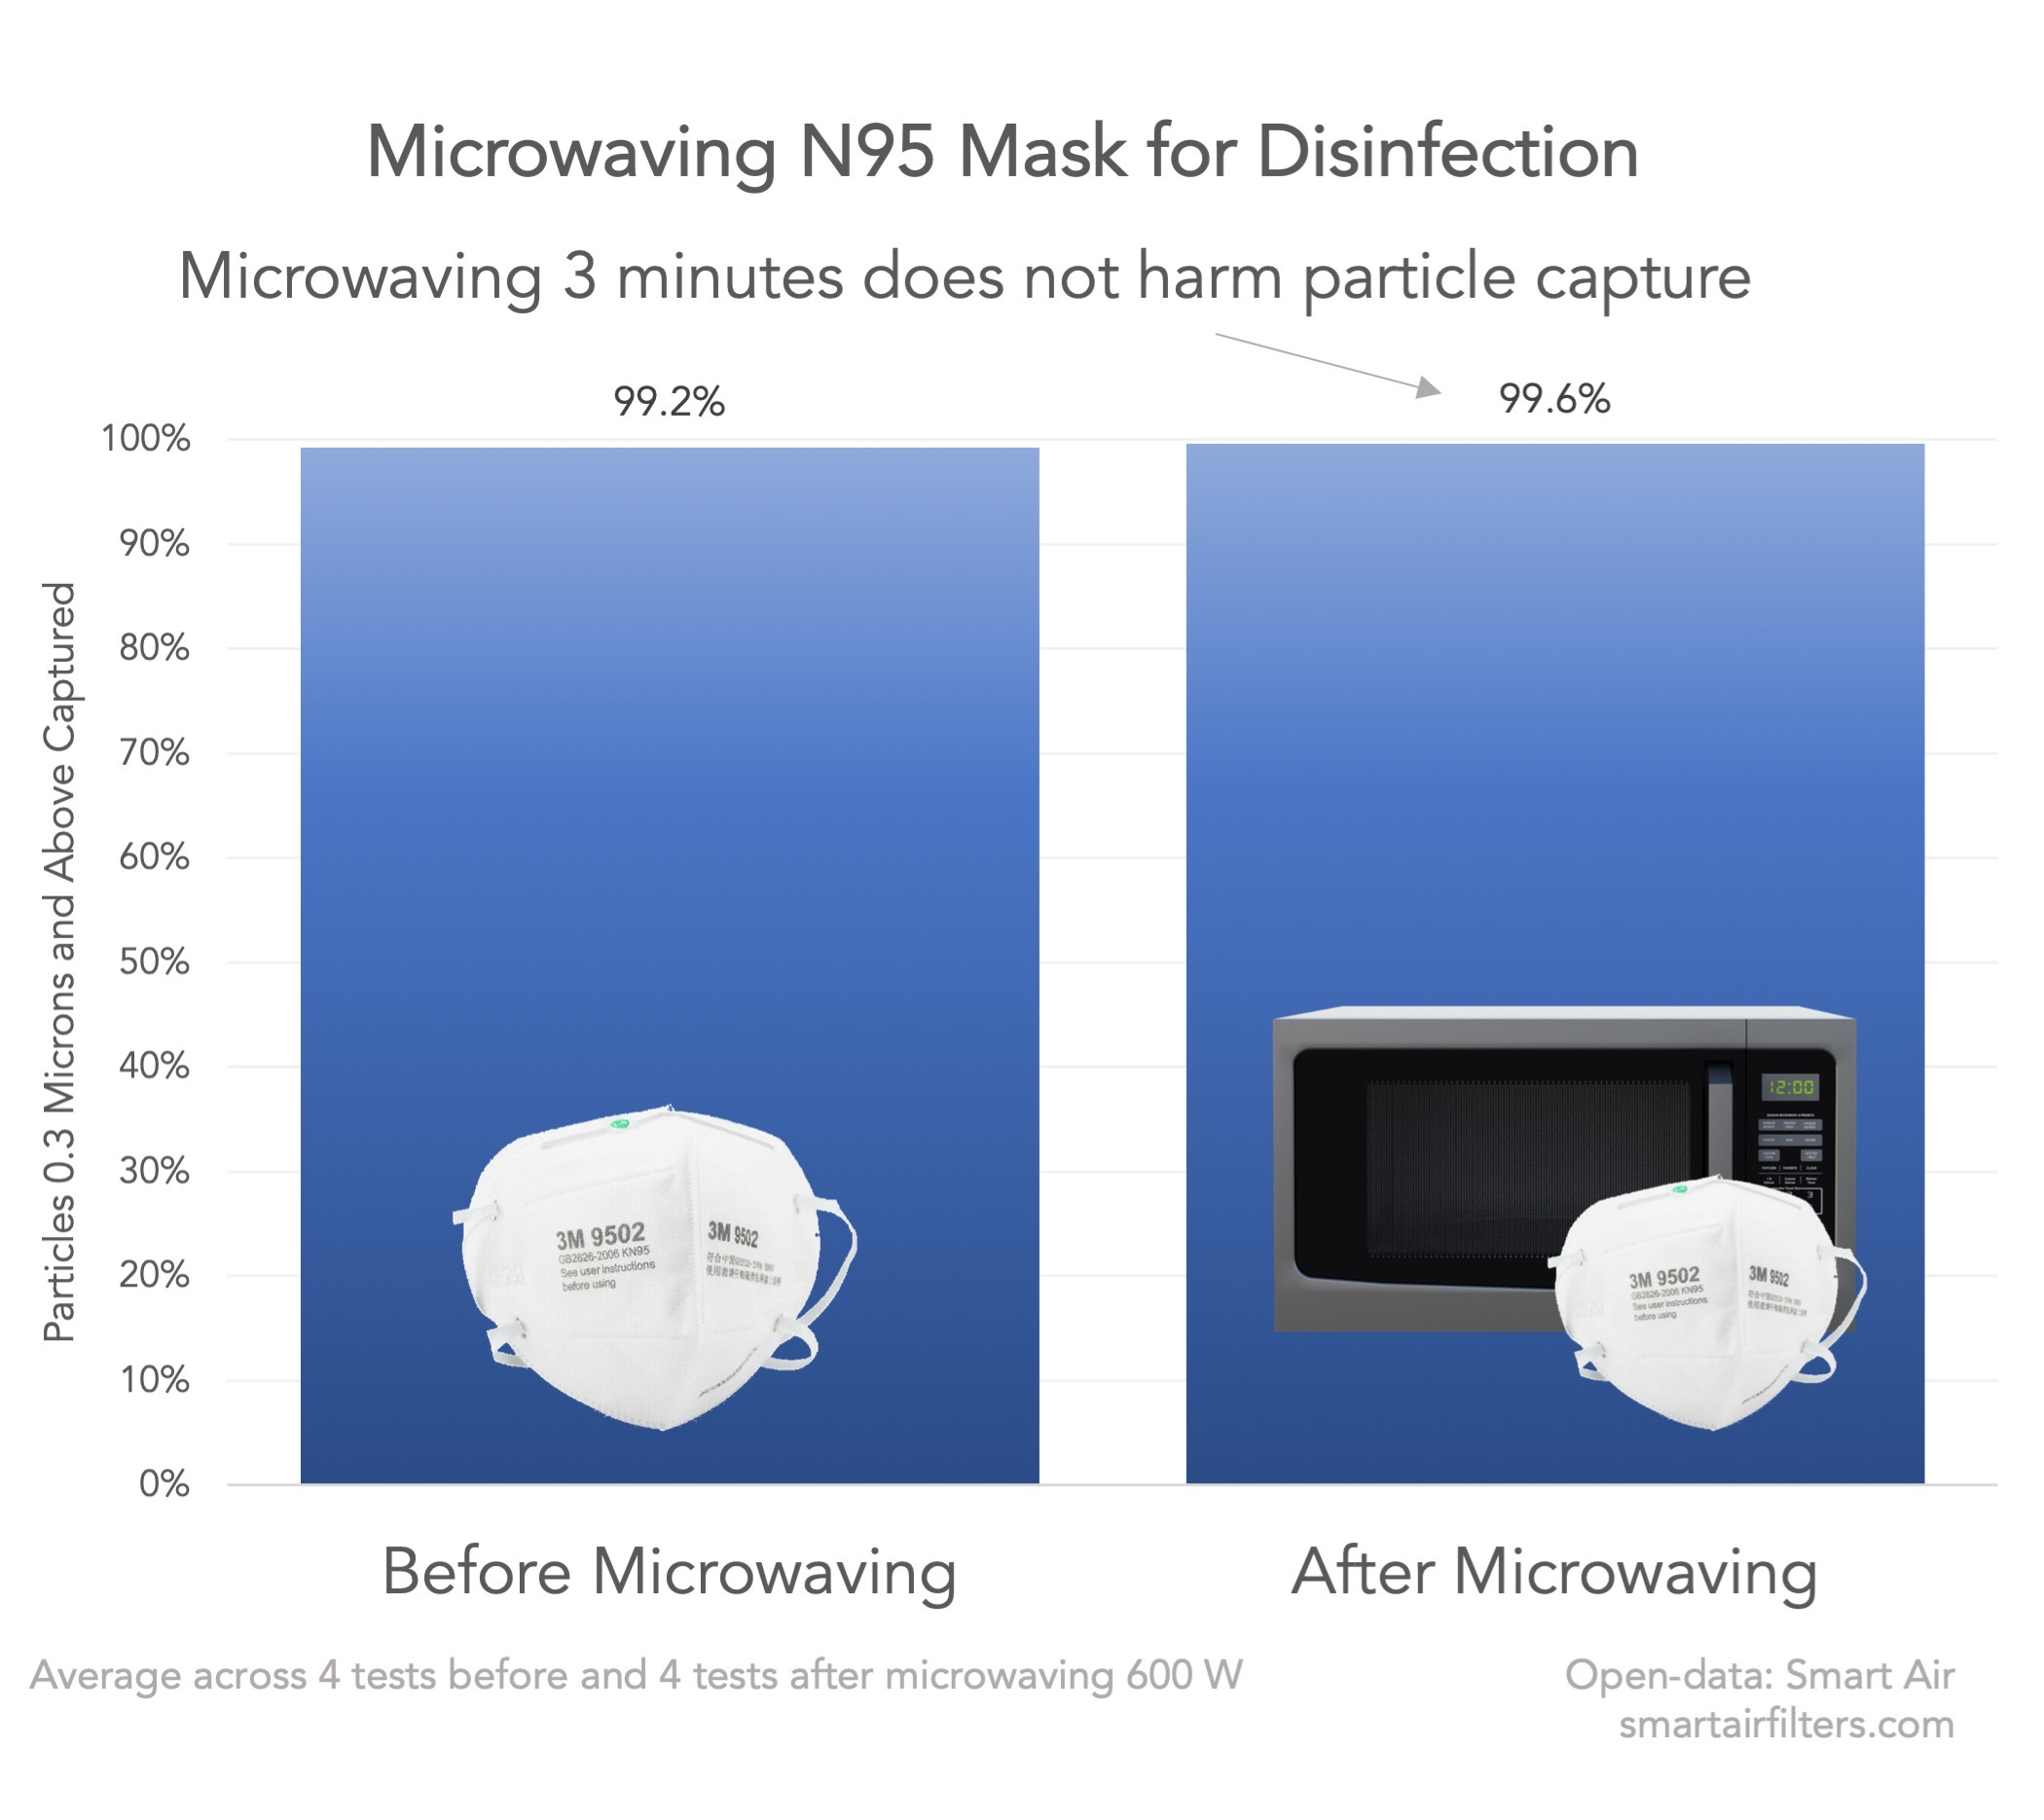 Microwaving Masks Does Not Harm Performance